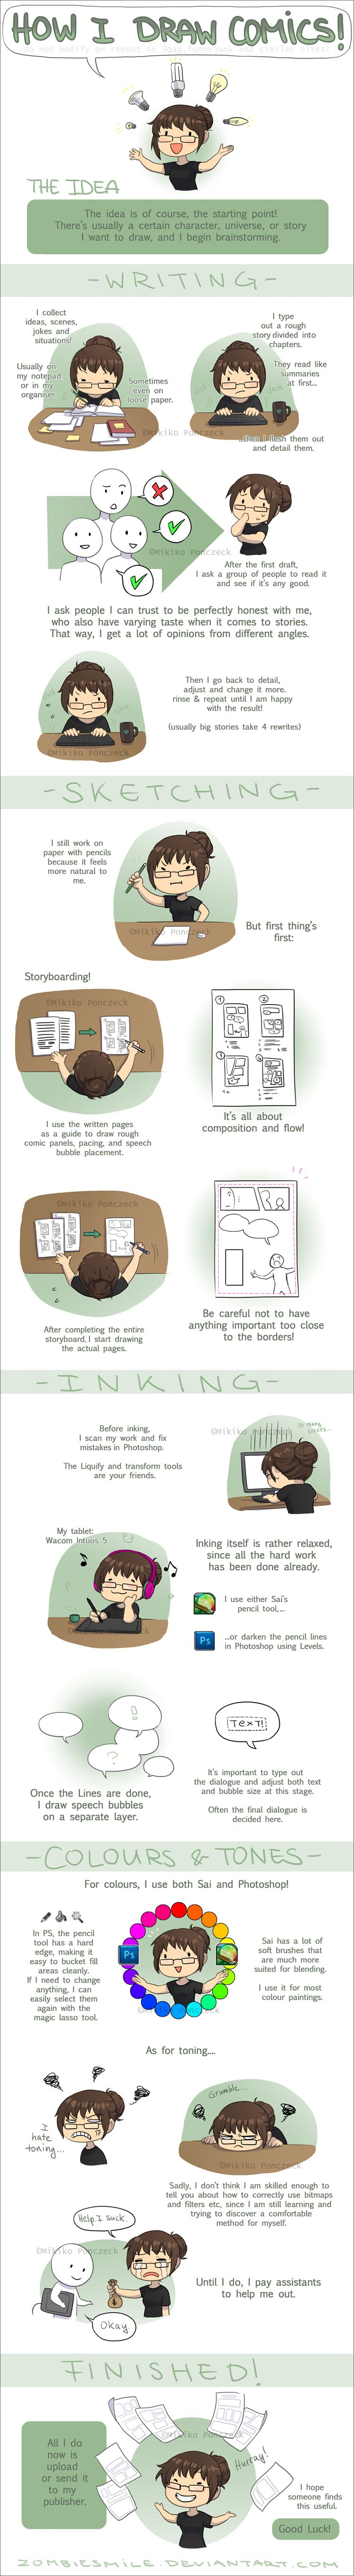 How I Draw Comics by Zombiesmile.deviantart.com on #deviantART